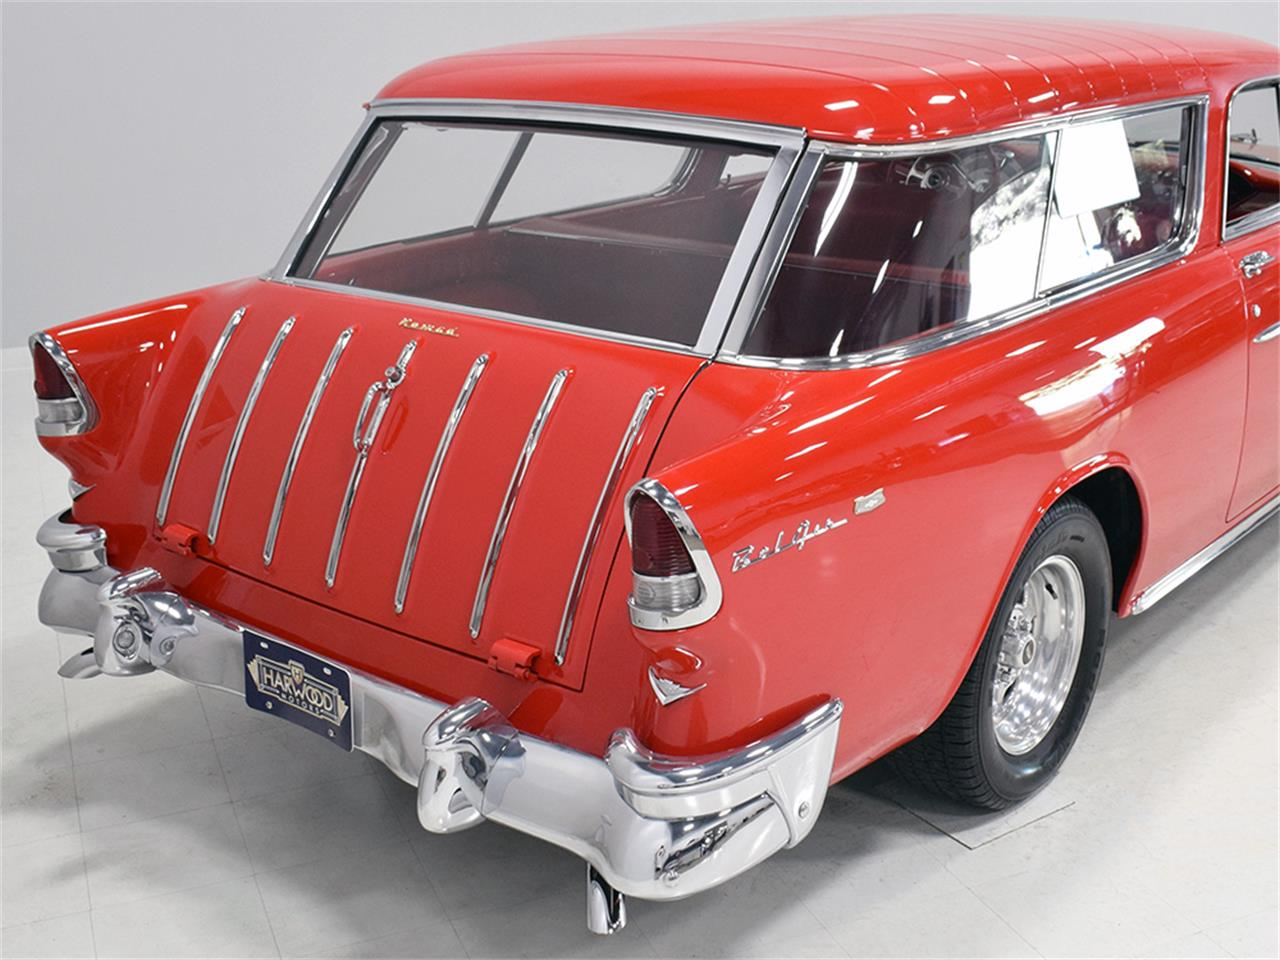 Large Picture of '55 Nomad - $69,900.00 Offered by Harwood Motors, LTD. - O8YP